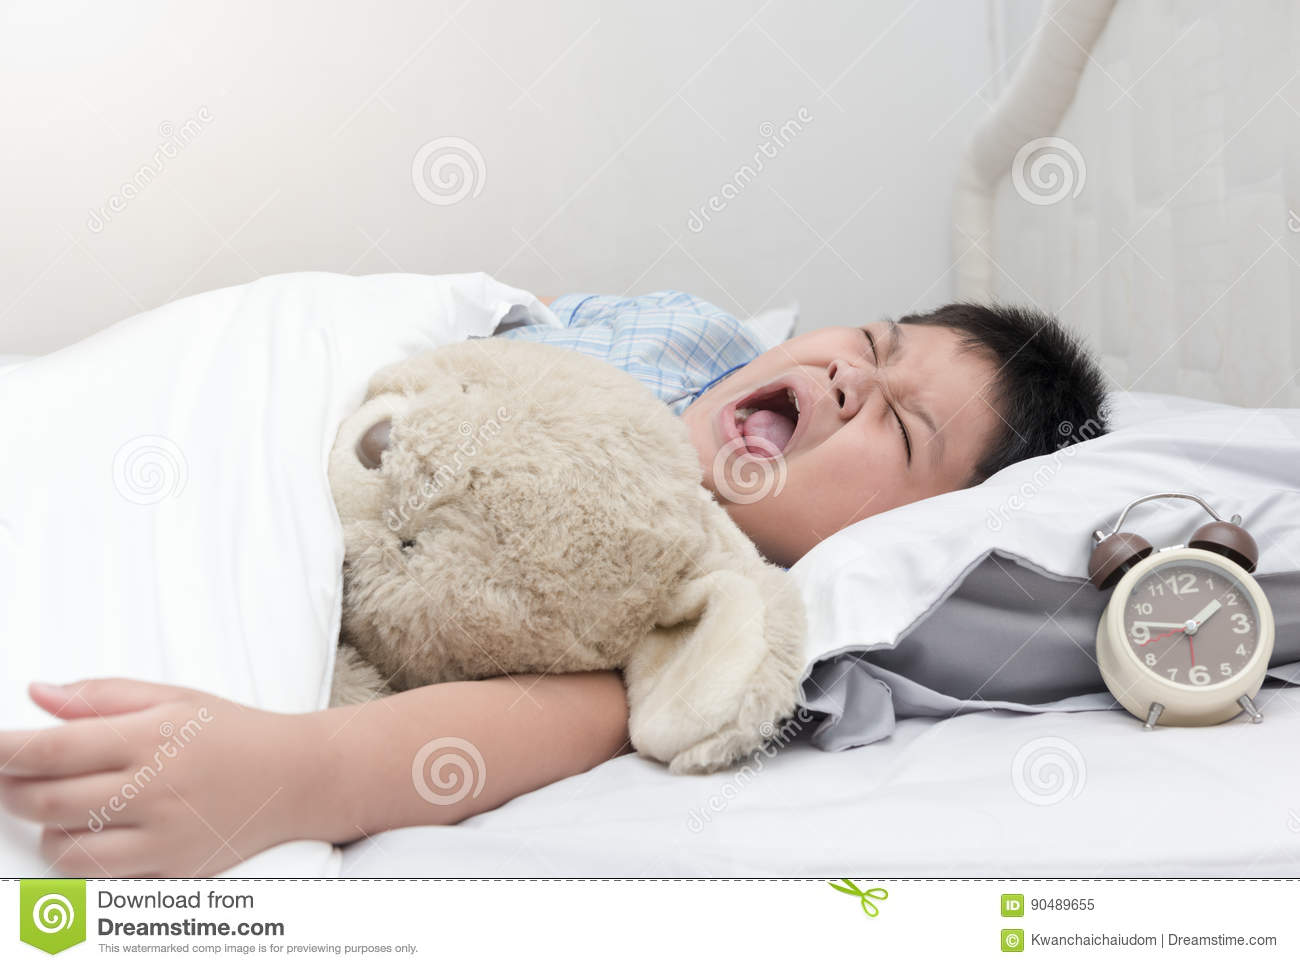 Obese fat boy yawn and sleep in morning